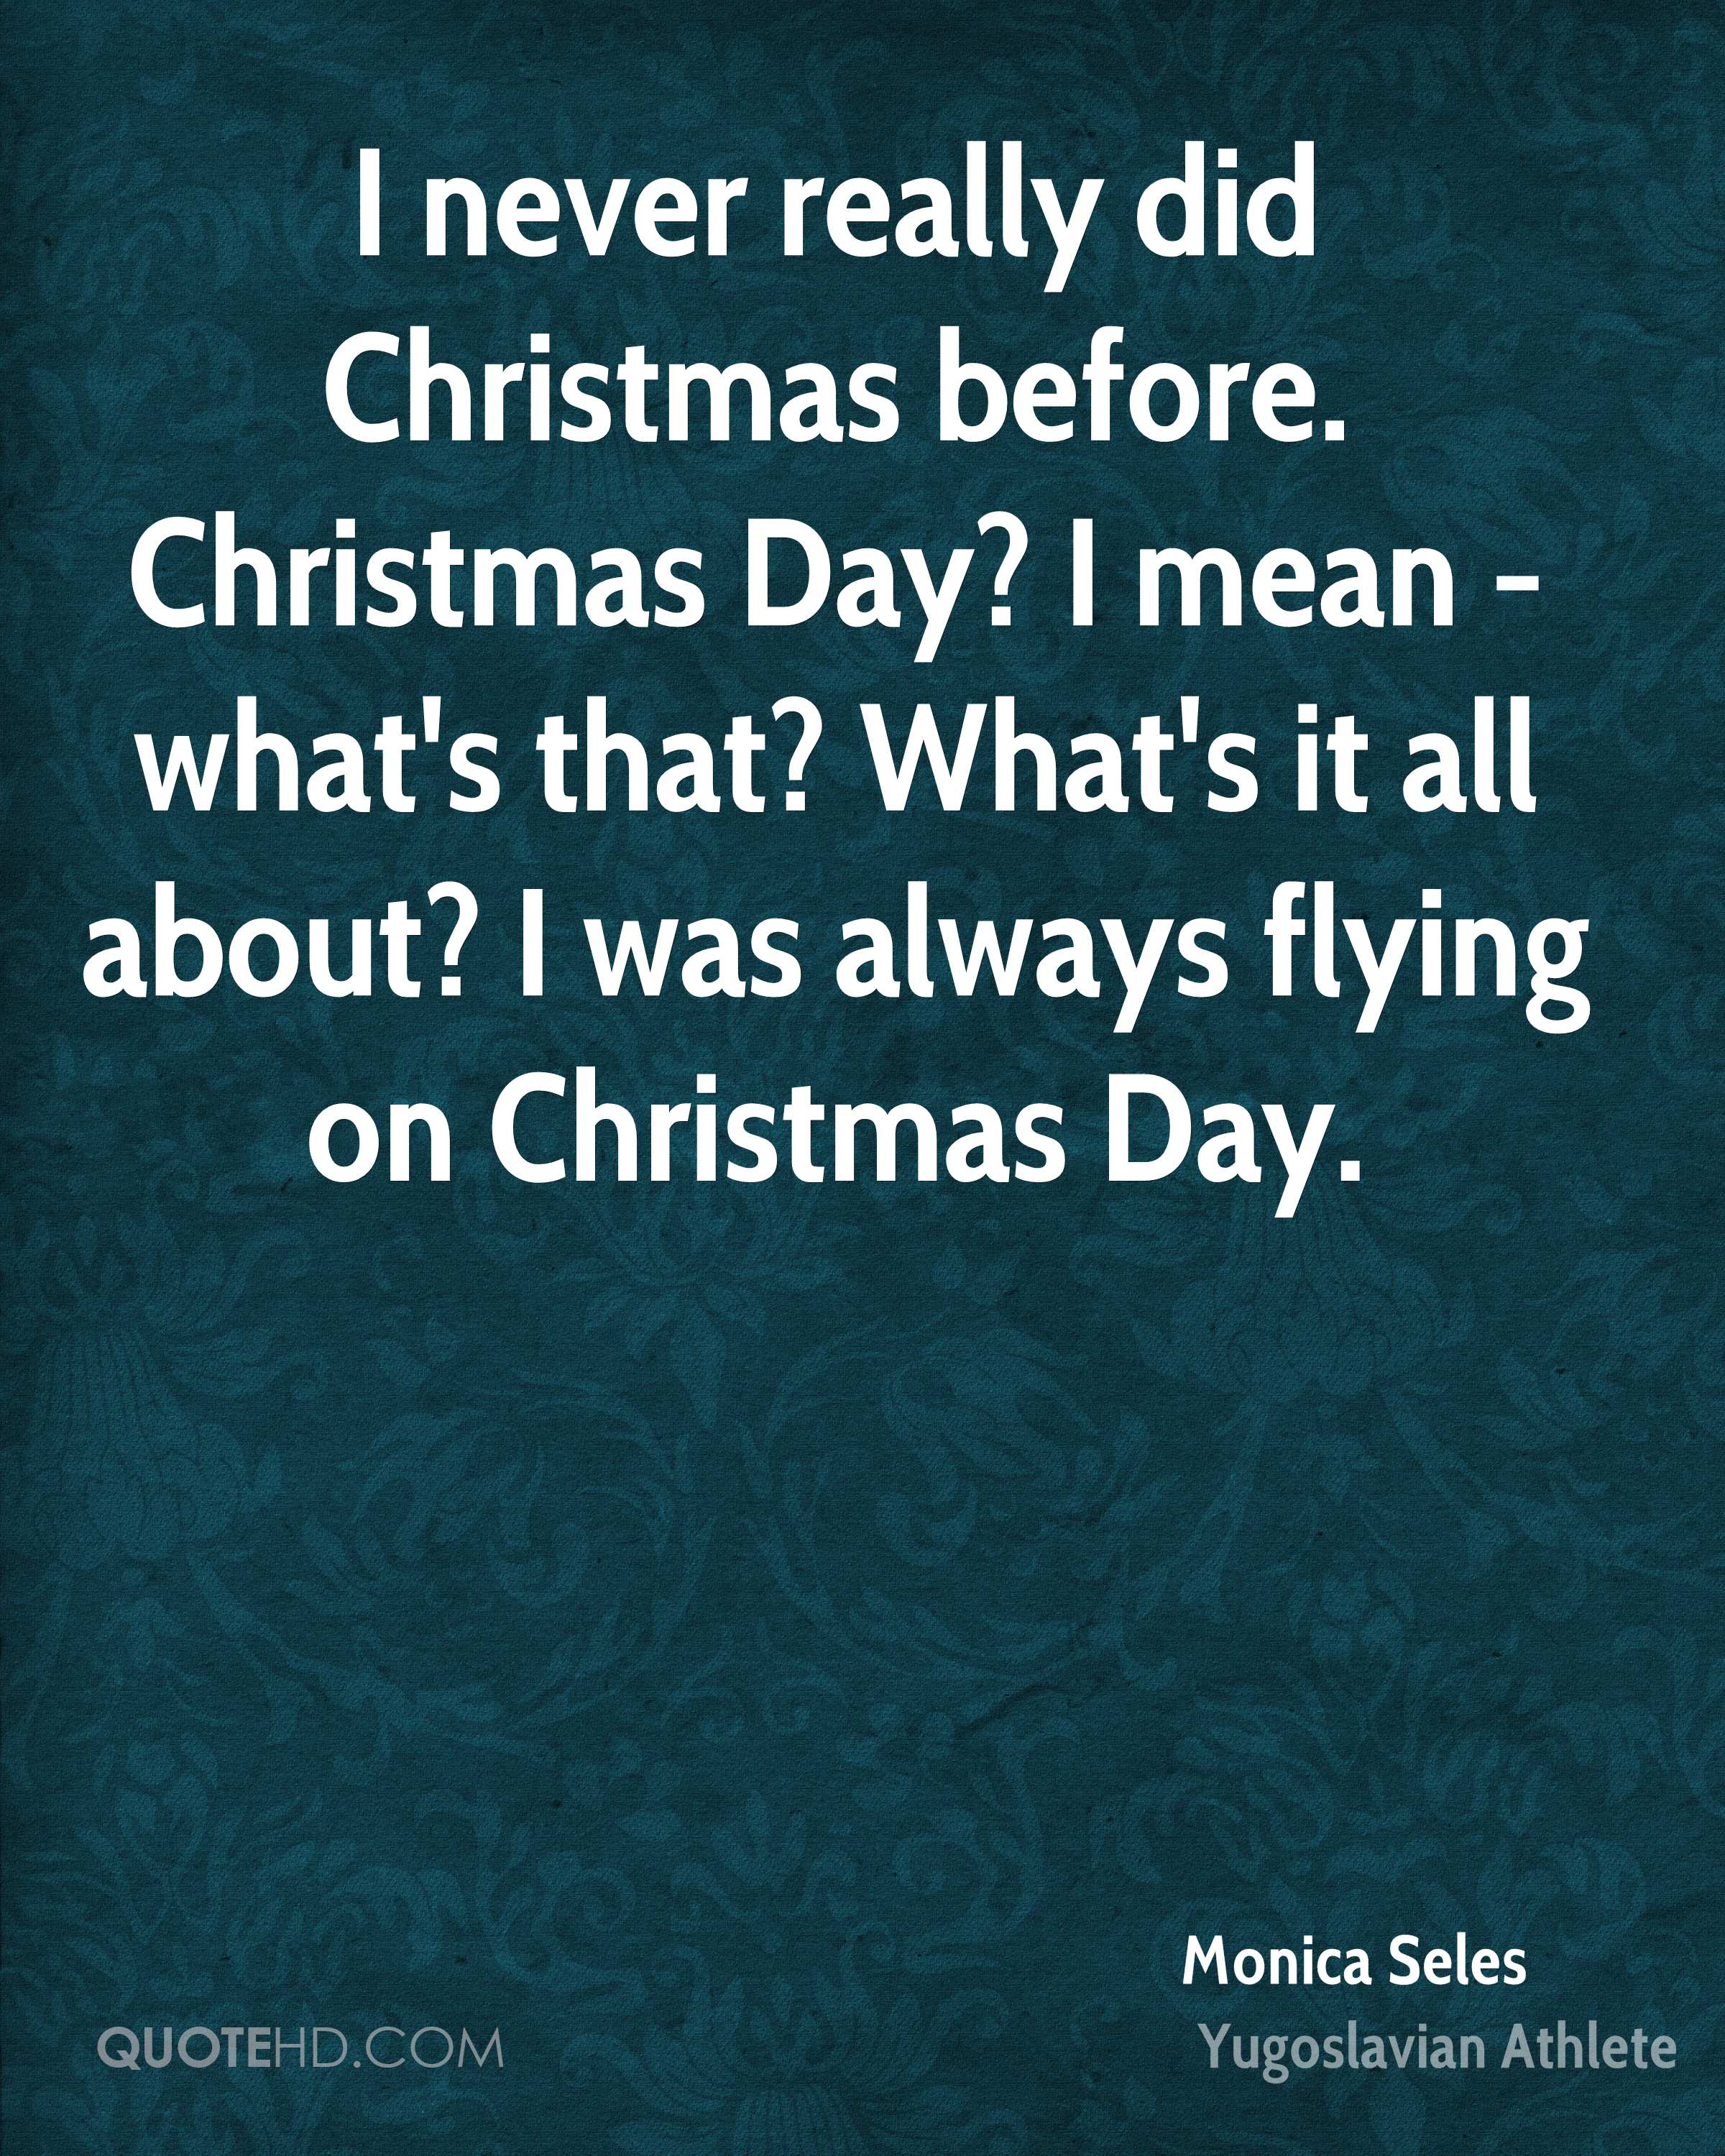 i never really did christmas before christmas day i mean whats that - What Does Christmas Really Mean